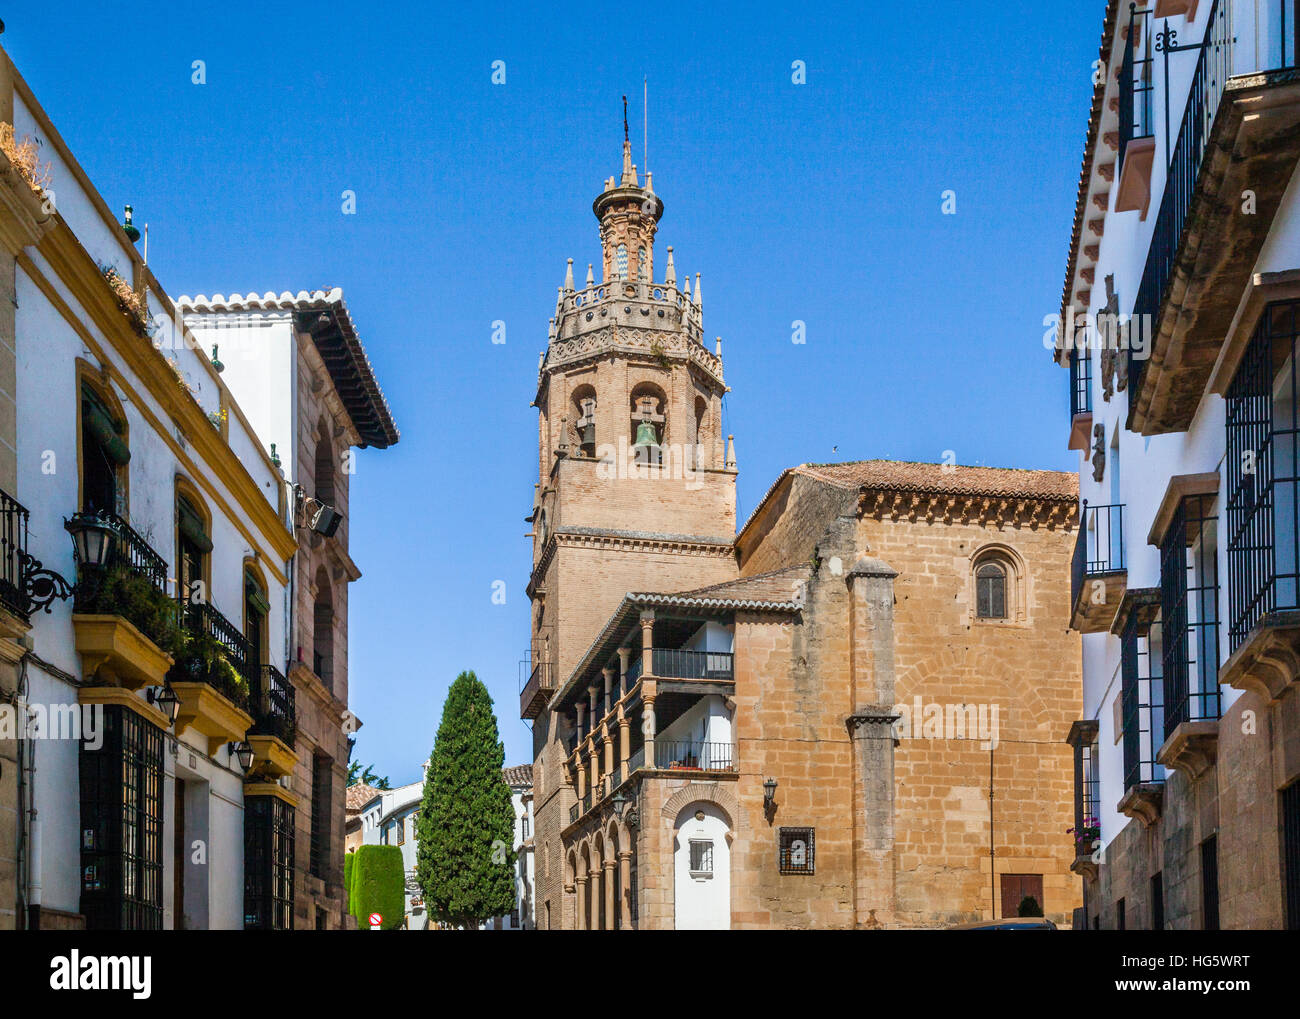 Spain, Andalusia, Province of Malaga, Ronda, Church of Santa Maria Mayor (Parroquia Santa Maria Mayor), originally - Stock Image